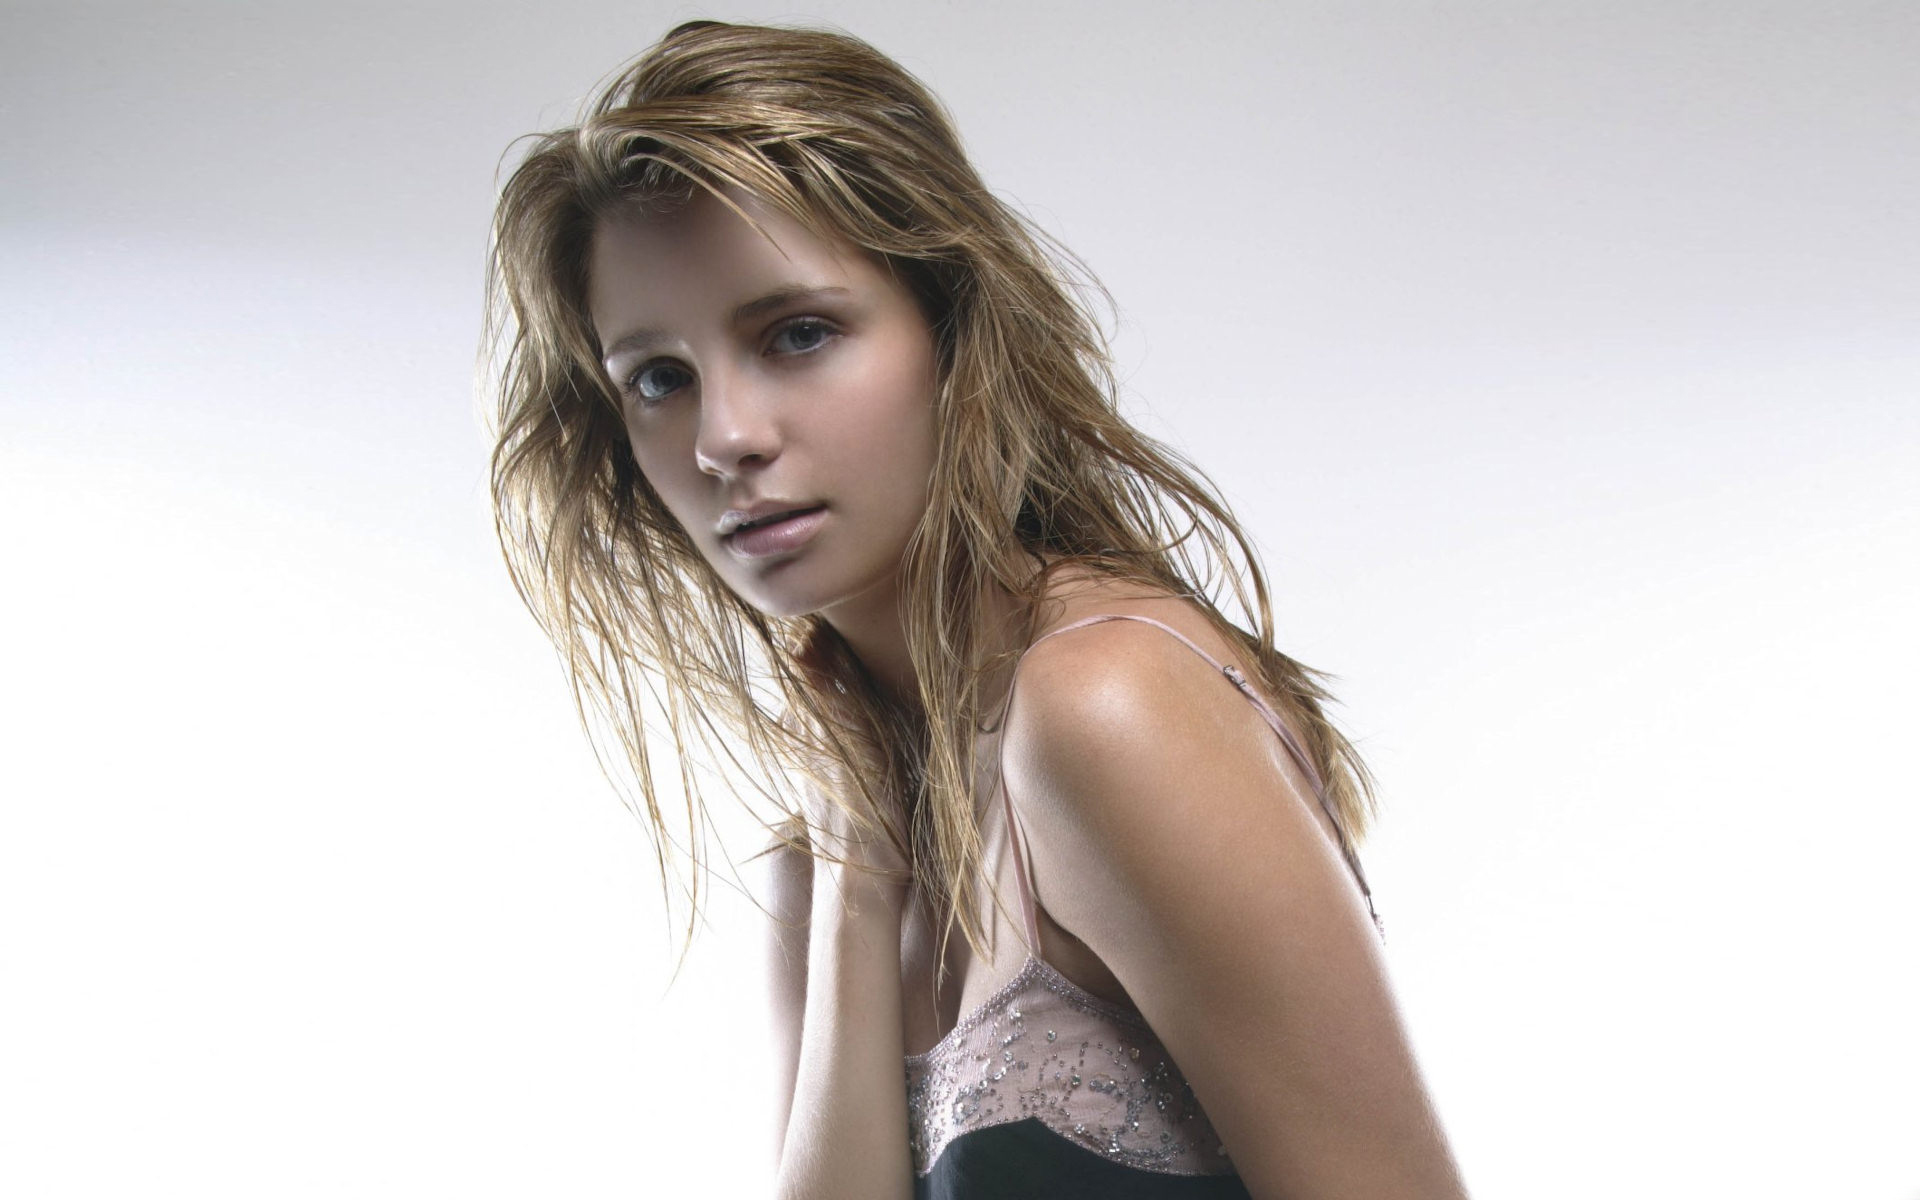 woman Actress mischa barton Simple Background HD Wallpaper